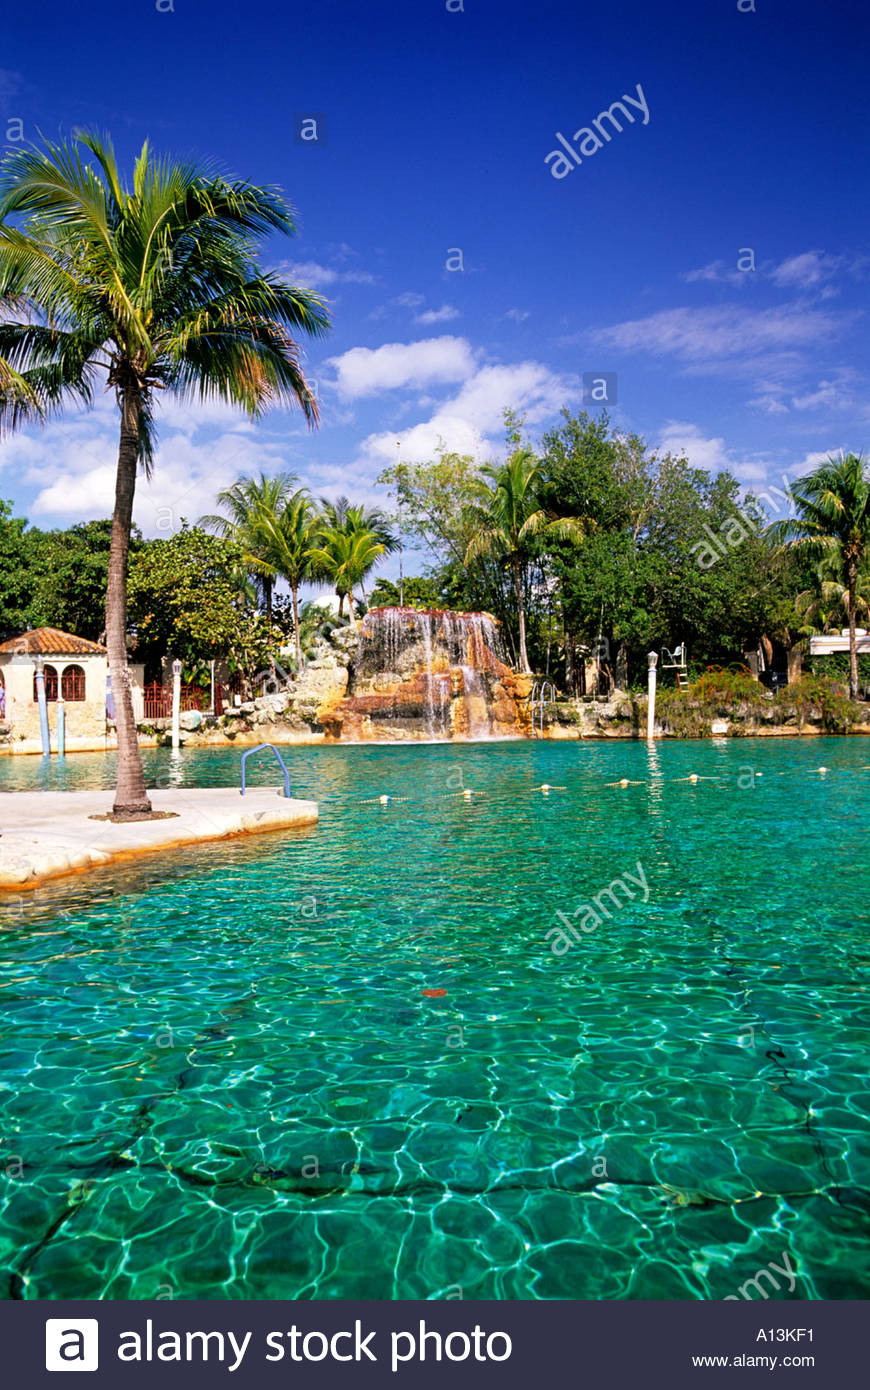 Venetian Pool Coral Gables Miami Florida USA - Stock Image